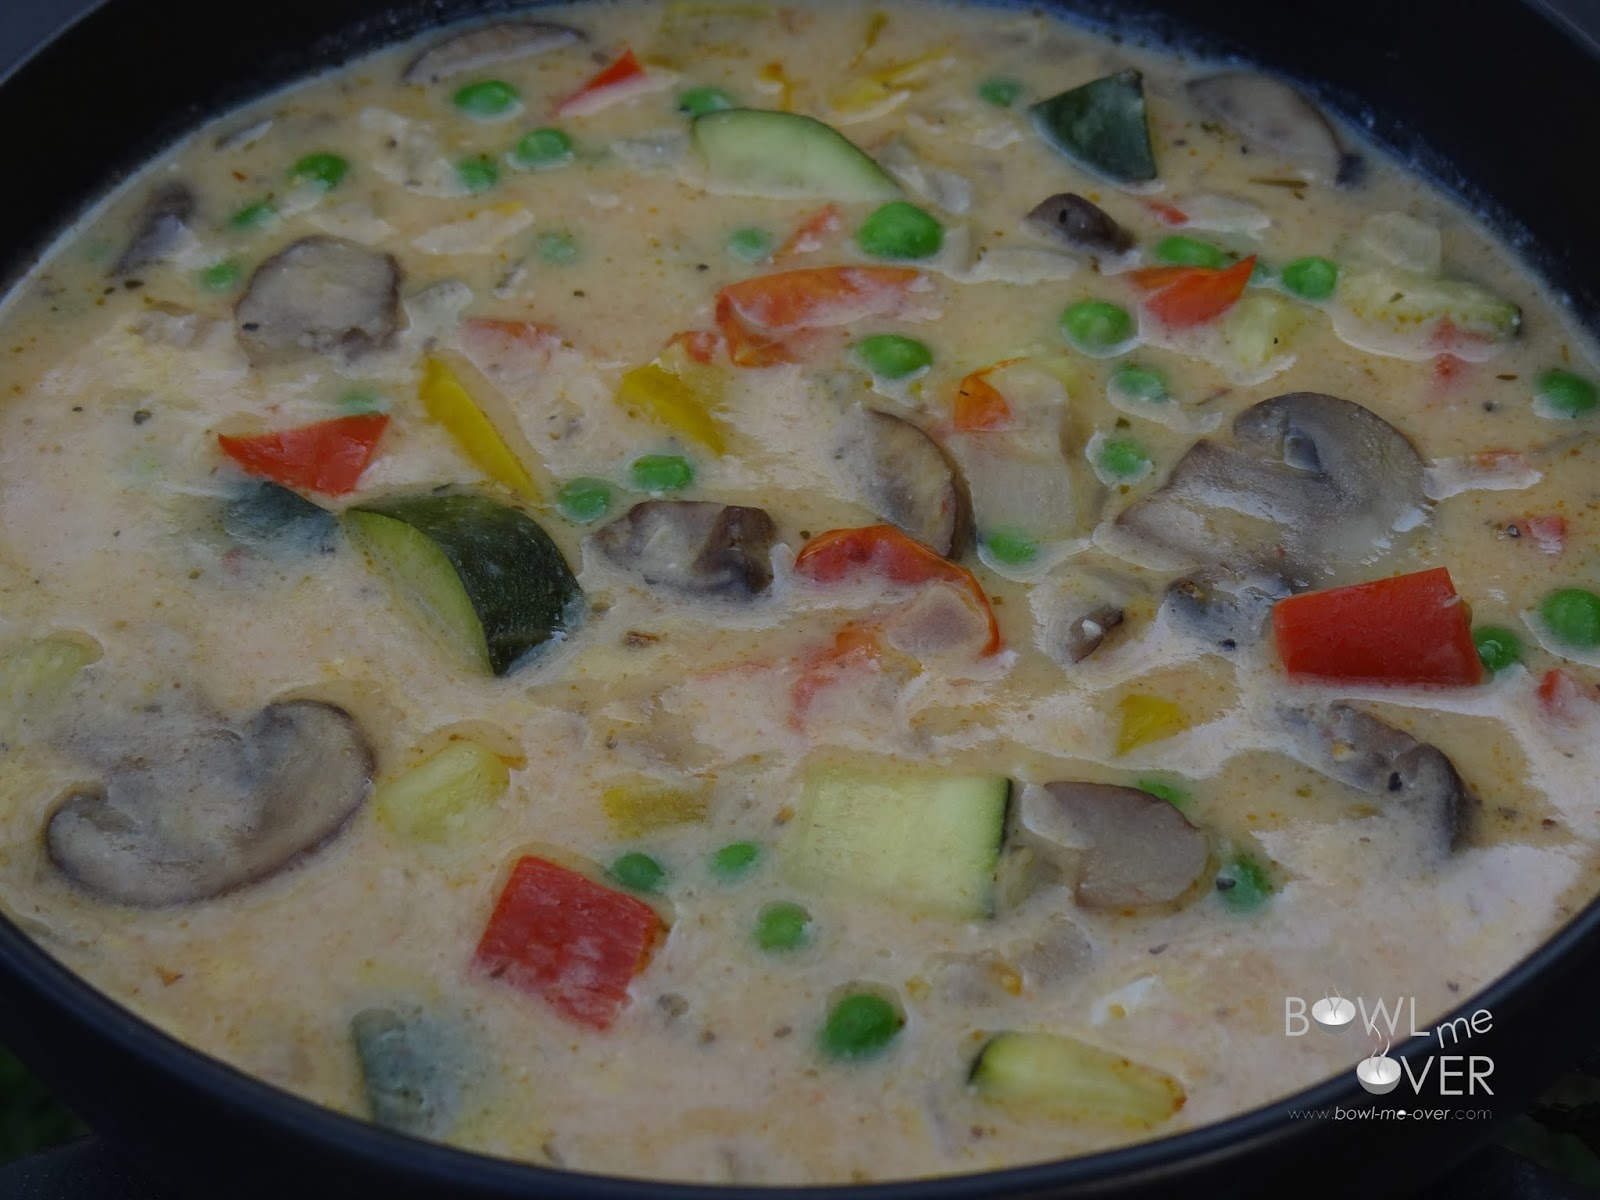 A delicious vegetable soup filled with zucchini, mushrooms, peppers, onions, and peas in a creamy, cheesy broth.